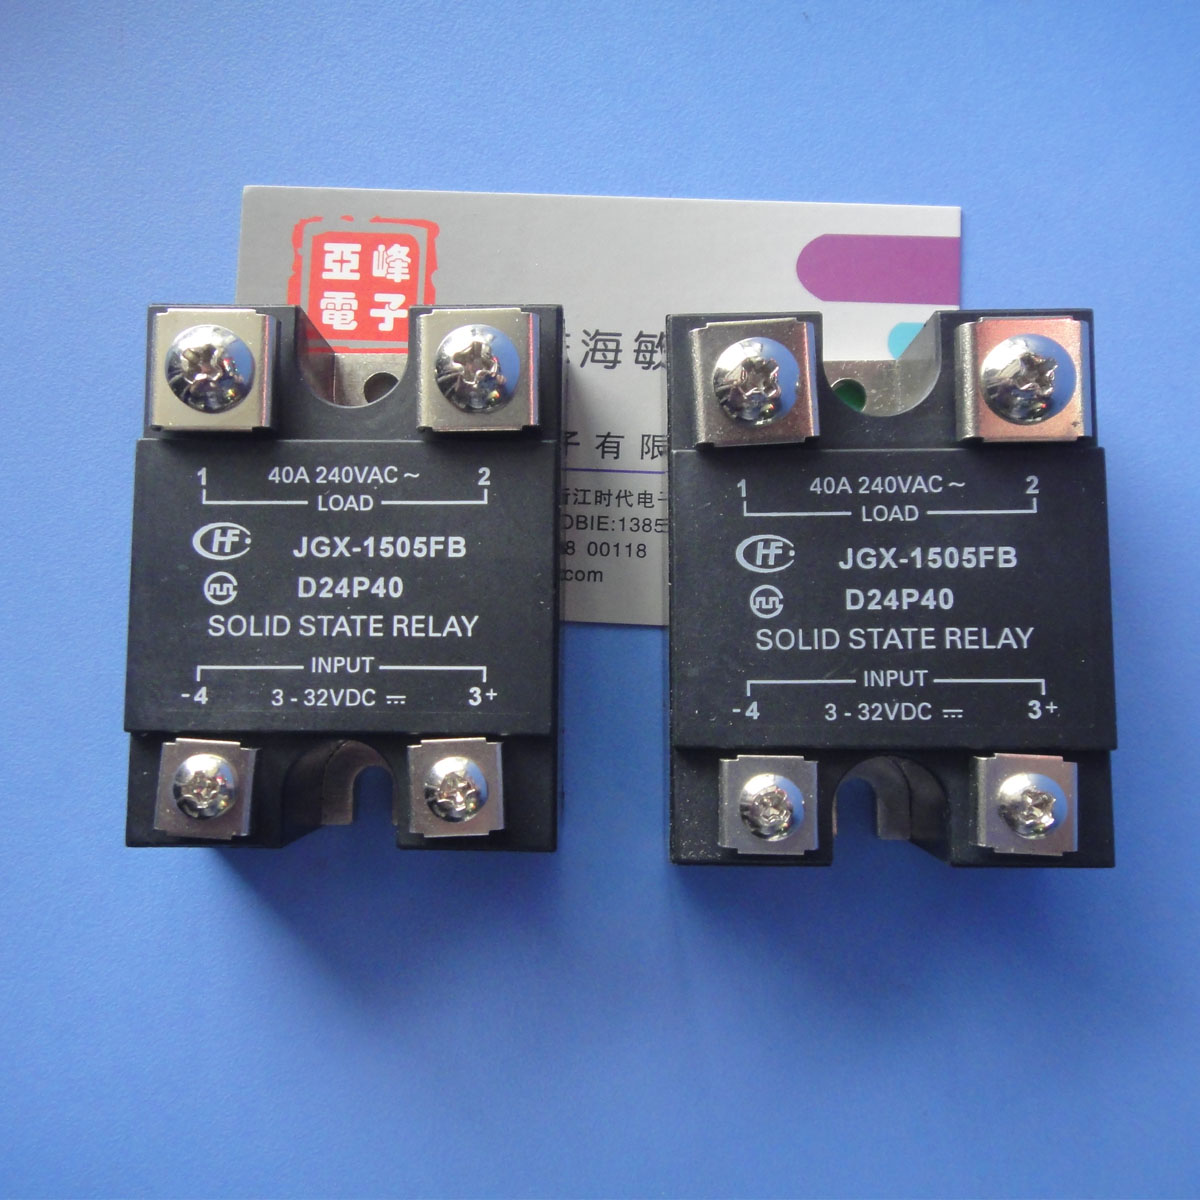 Free Delivery Solid State Relay Jgx 1505 Fb 40 A240vac D24p40 Input Germany 3 32 Vdc Output On Alibaba Group